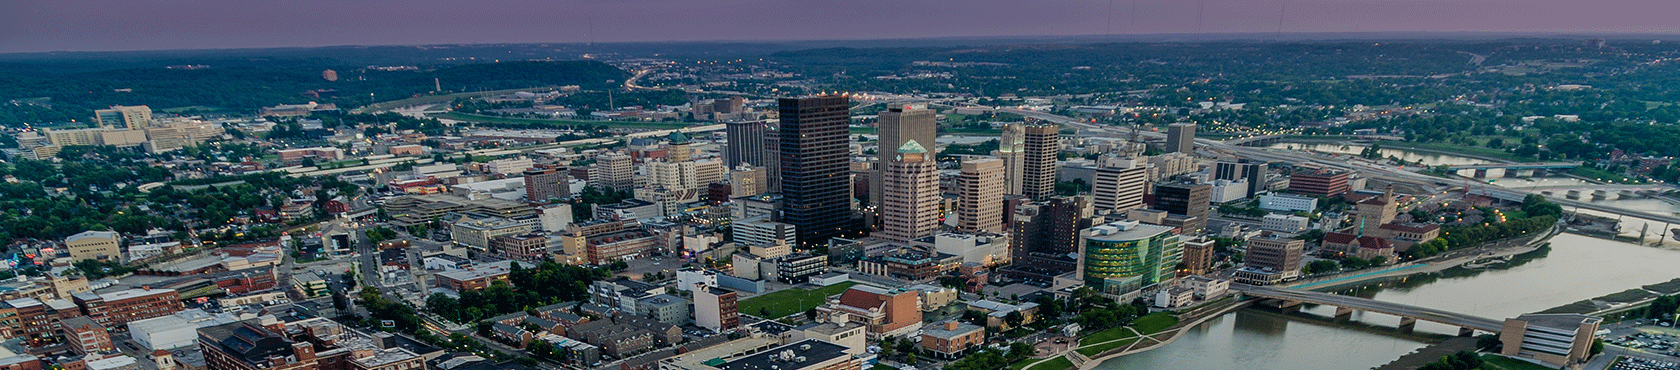 Aerial view of downtown Dayton